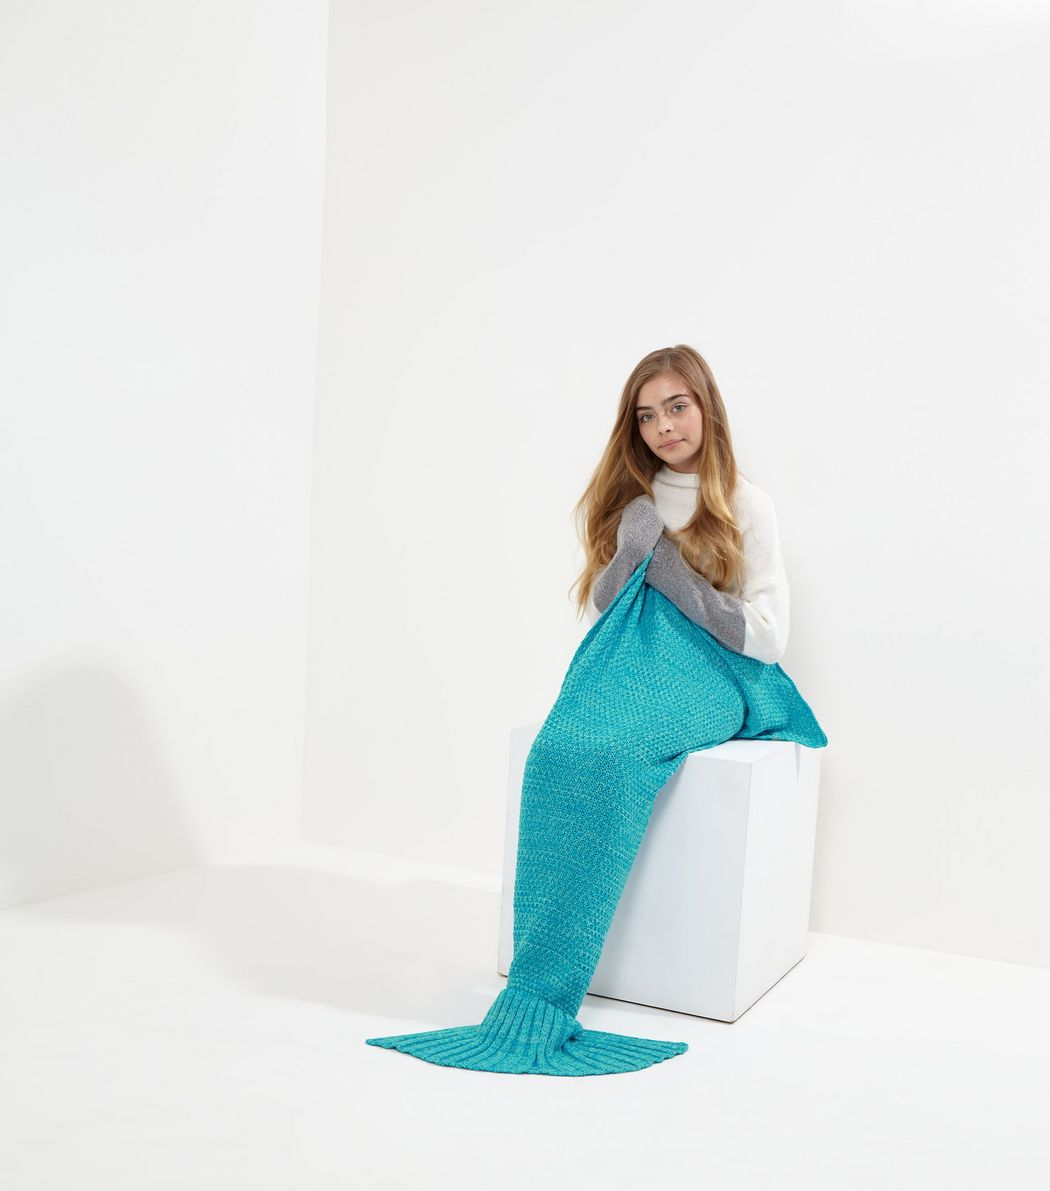 http://media.newlookassets.com/i/newlook/515195248/teens/underwear-and-nightwear/nightwear/teens-blue-mermaid-tail-blanket-/?$new_pdp_szoom_image_1050$